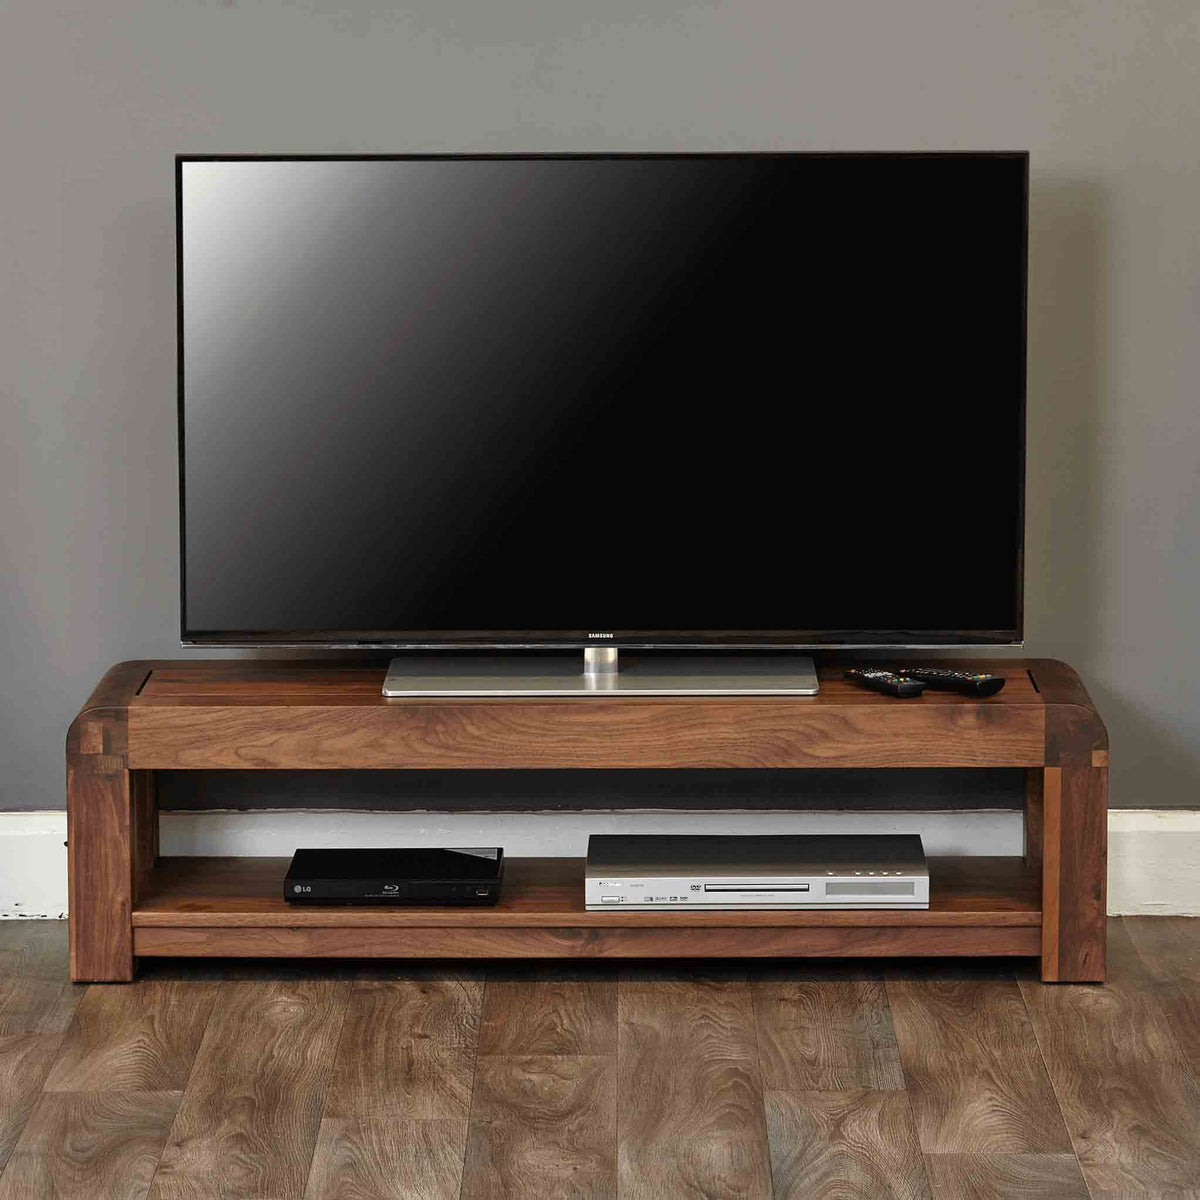 The Salem Walnut Large Wooden TV Stand 130cm from Roseland Furniture